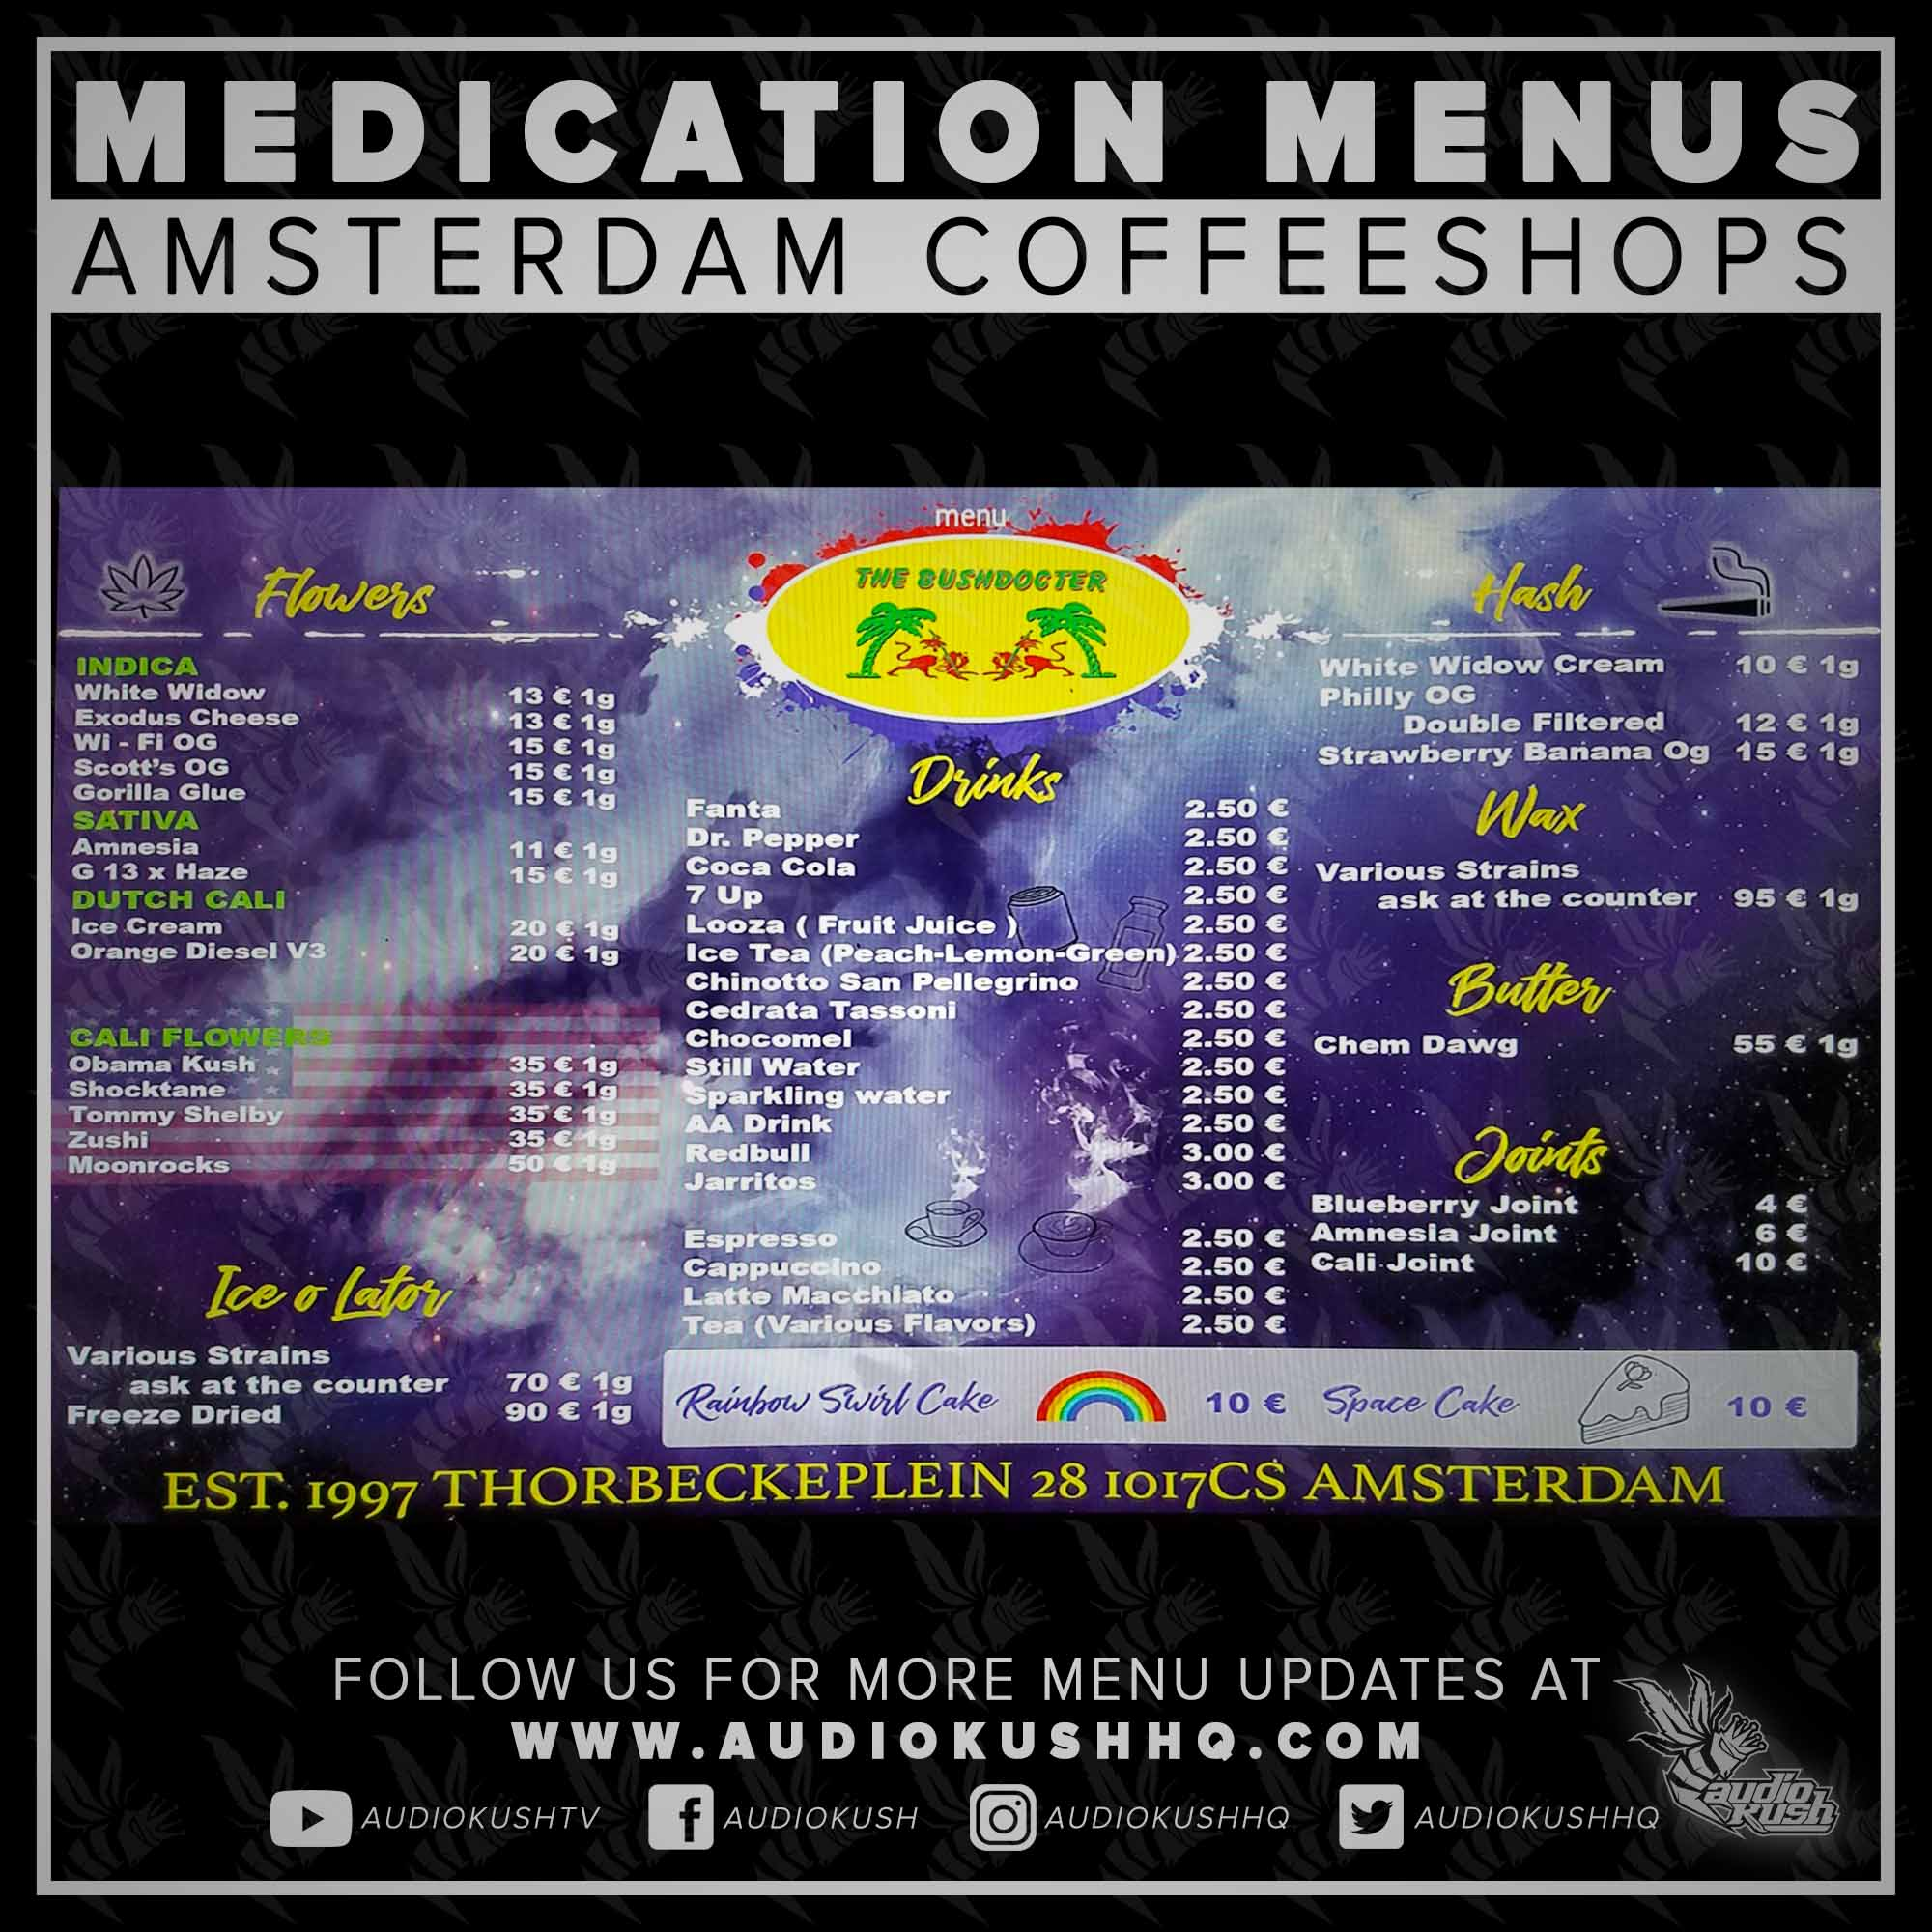 Coffeeshop Menu, Amsterdam, The Bushdocter, Nov 9 2020